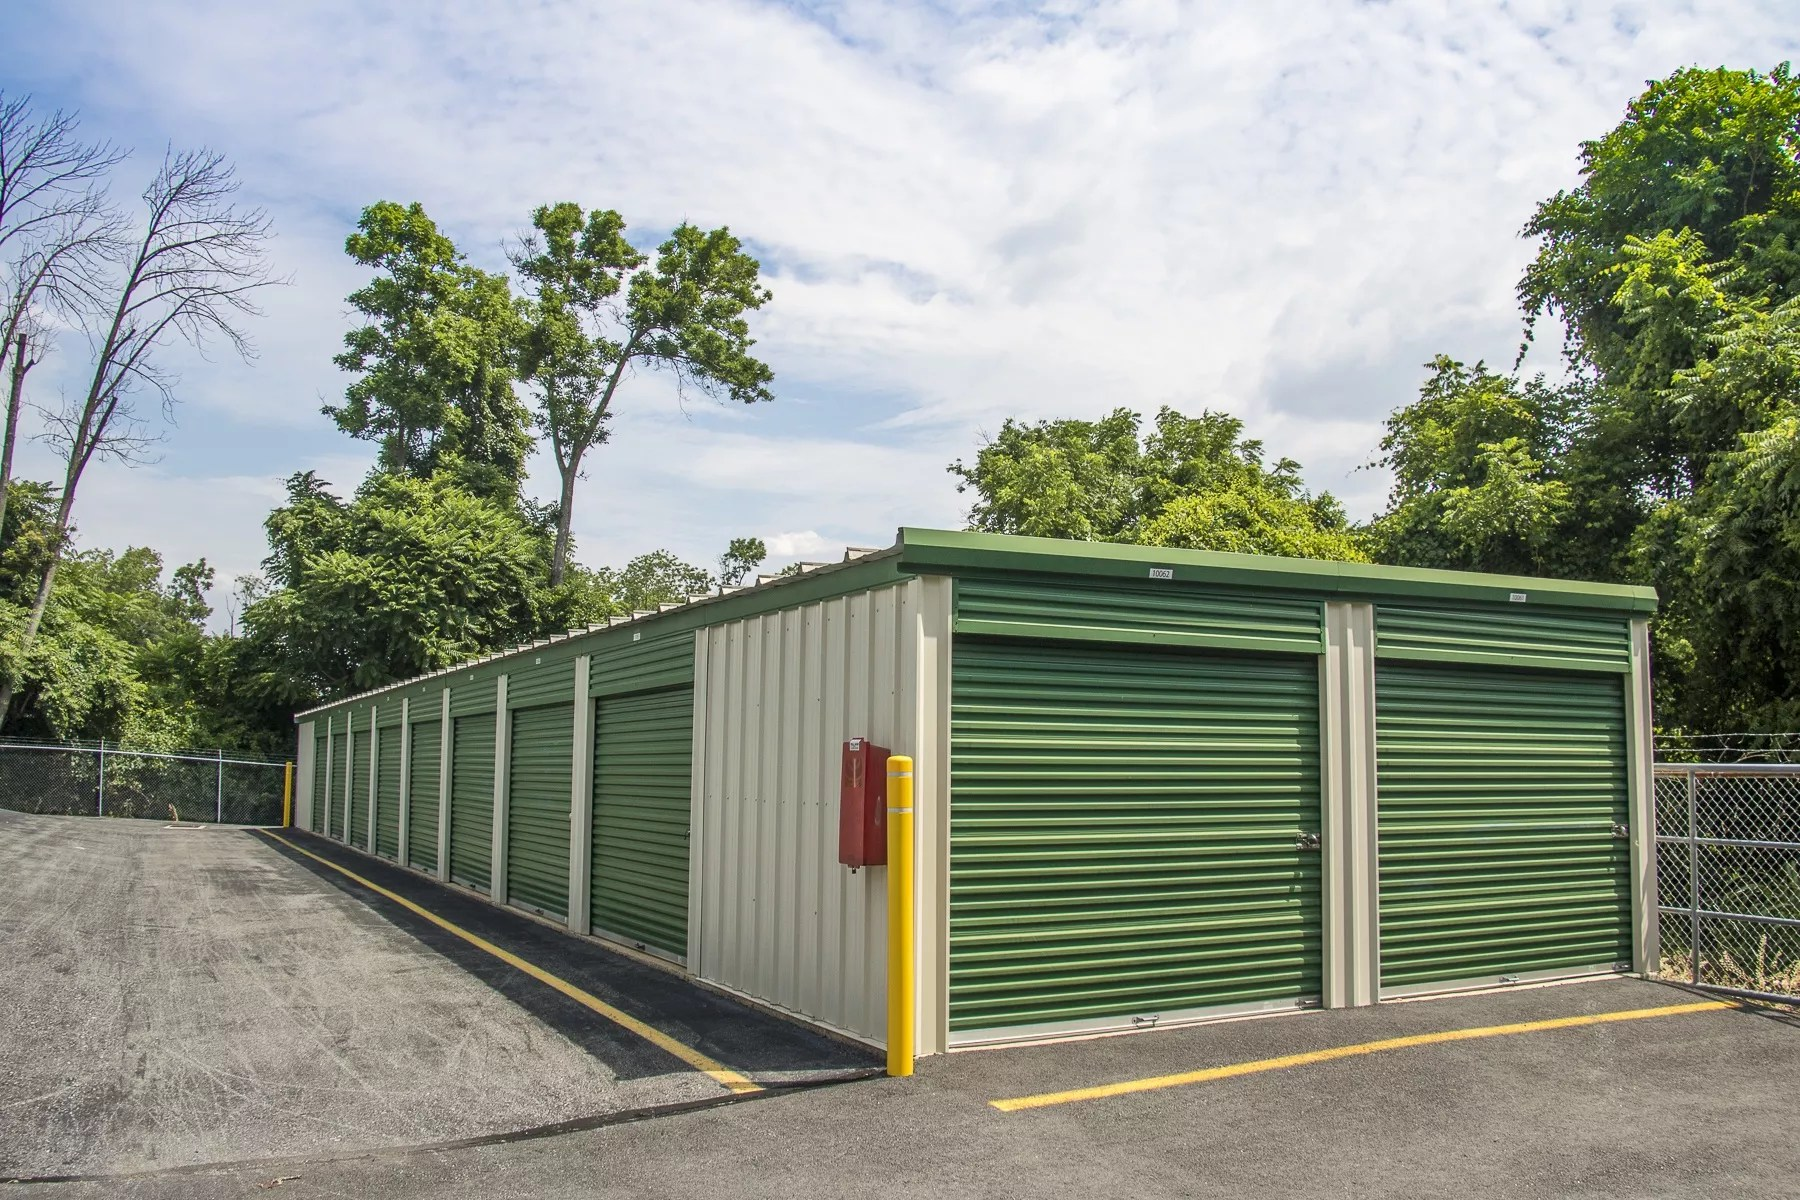 Storage Unit Cost Self Storage Units Sinking Spring Pa Storage Costs